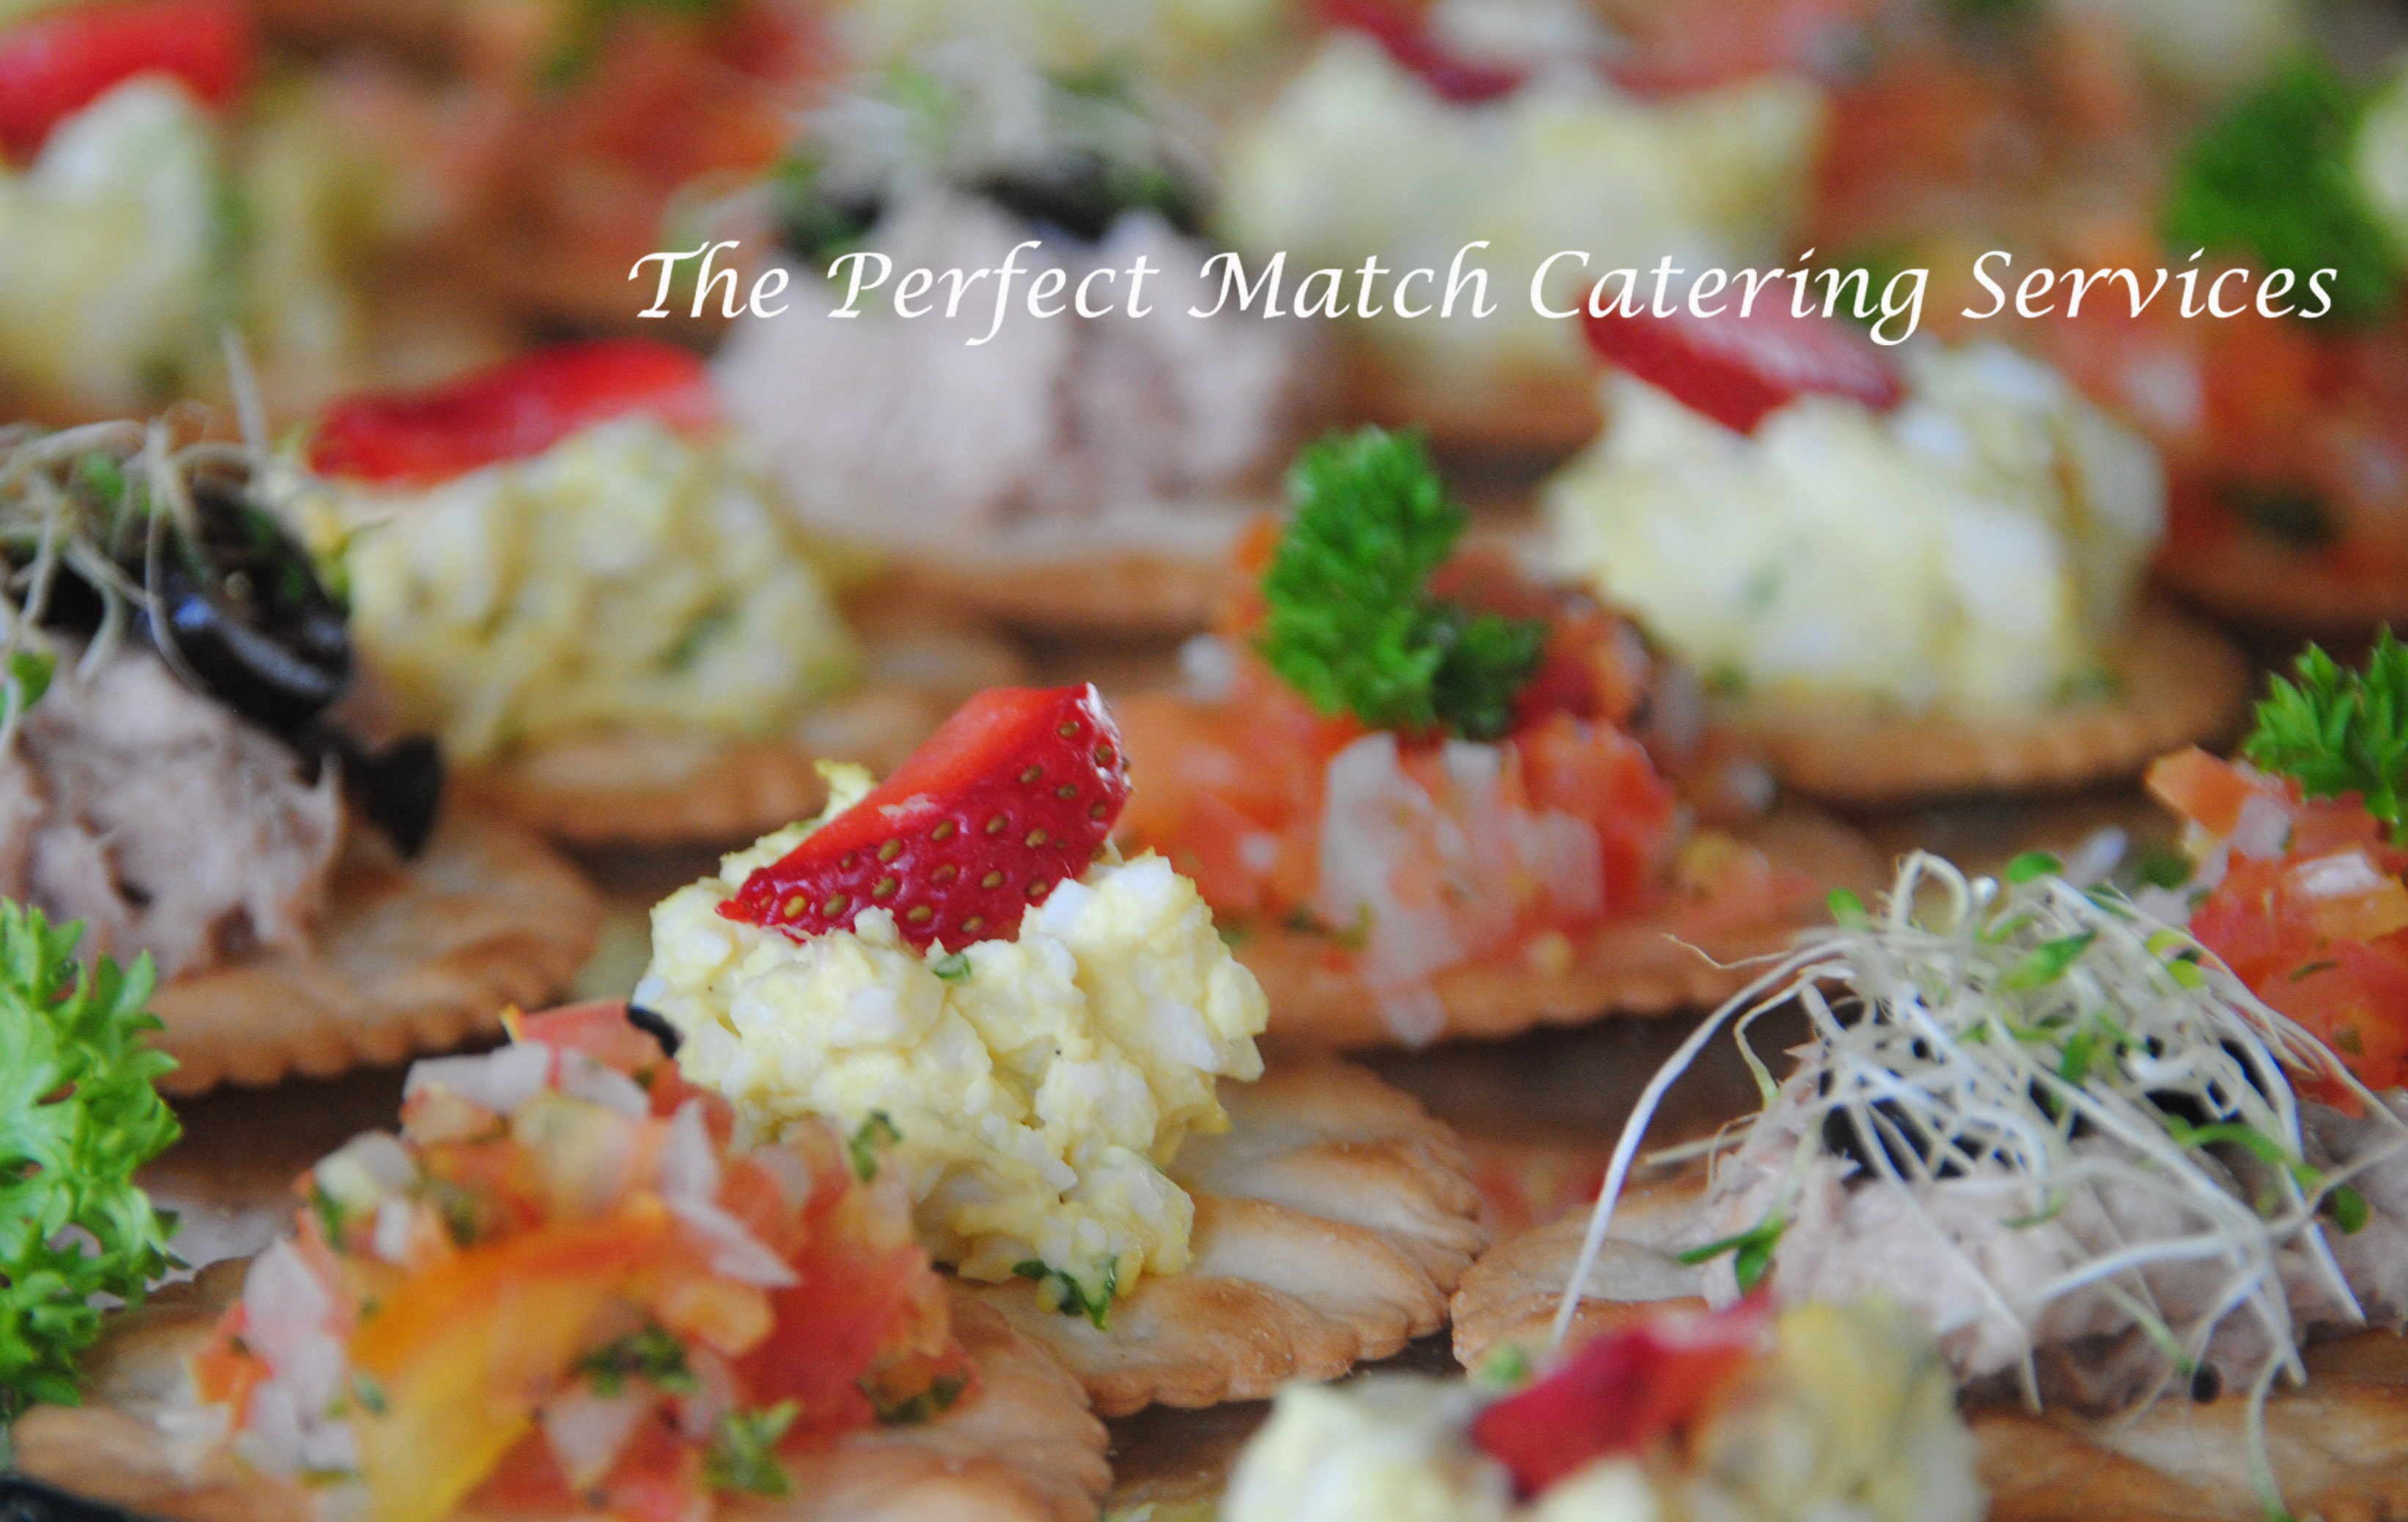 Canape finger food the perfect match catering services for Canape catering services